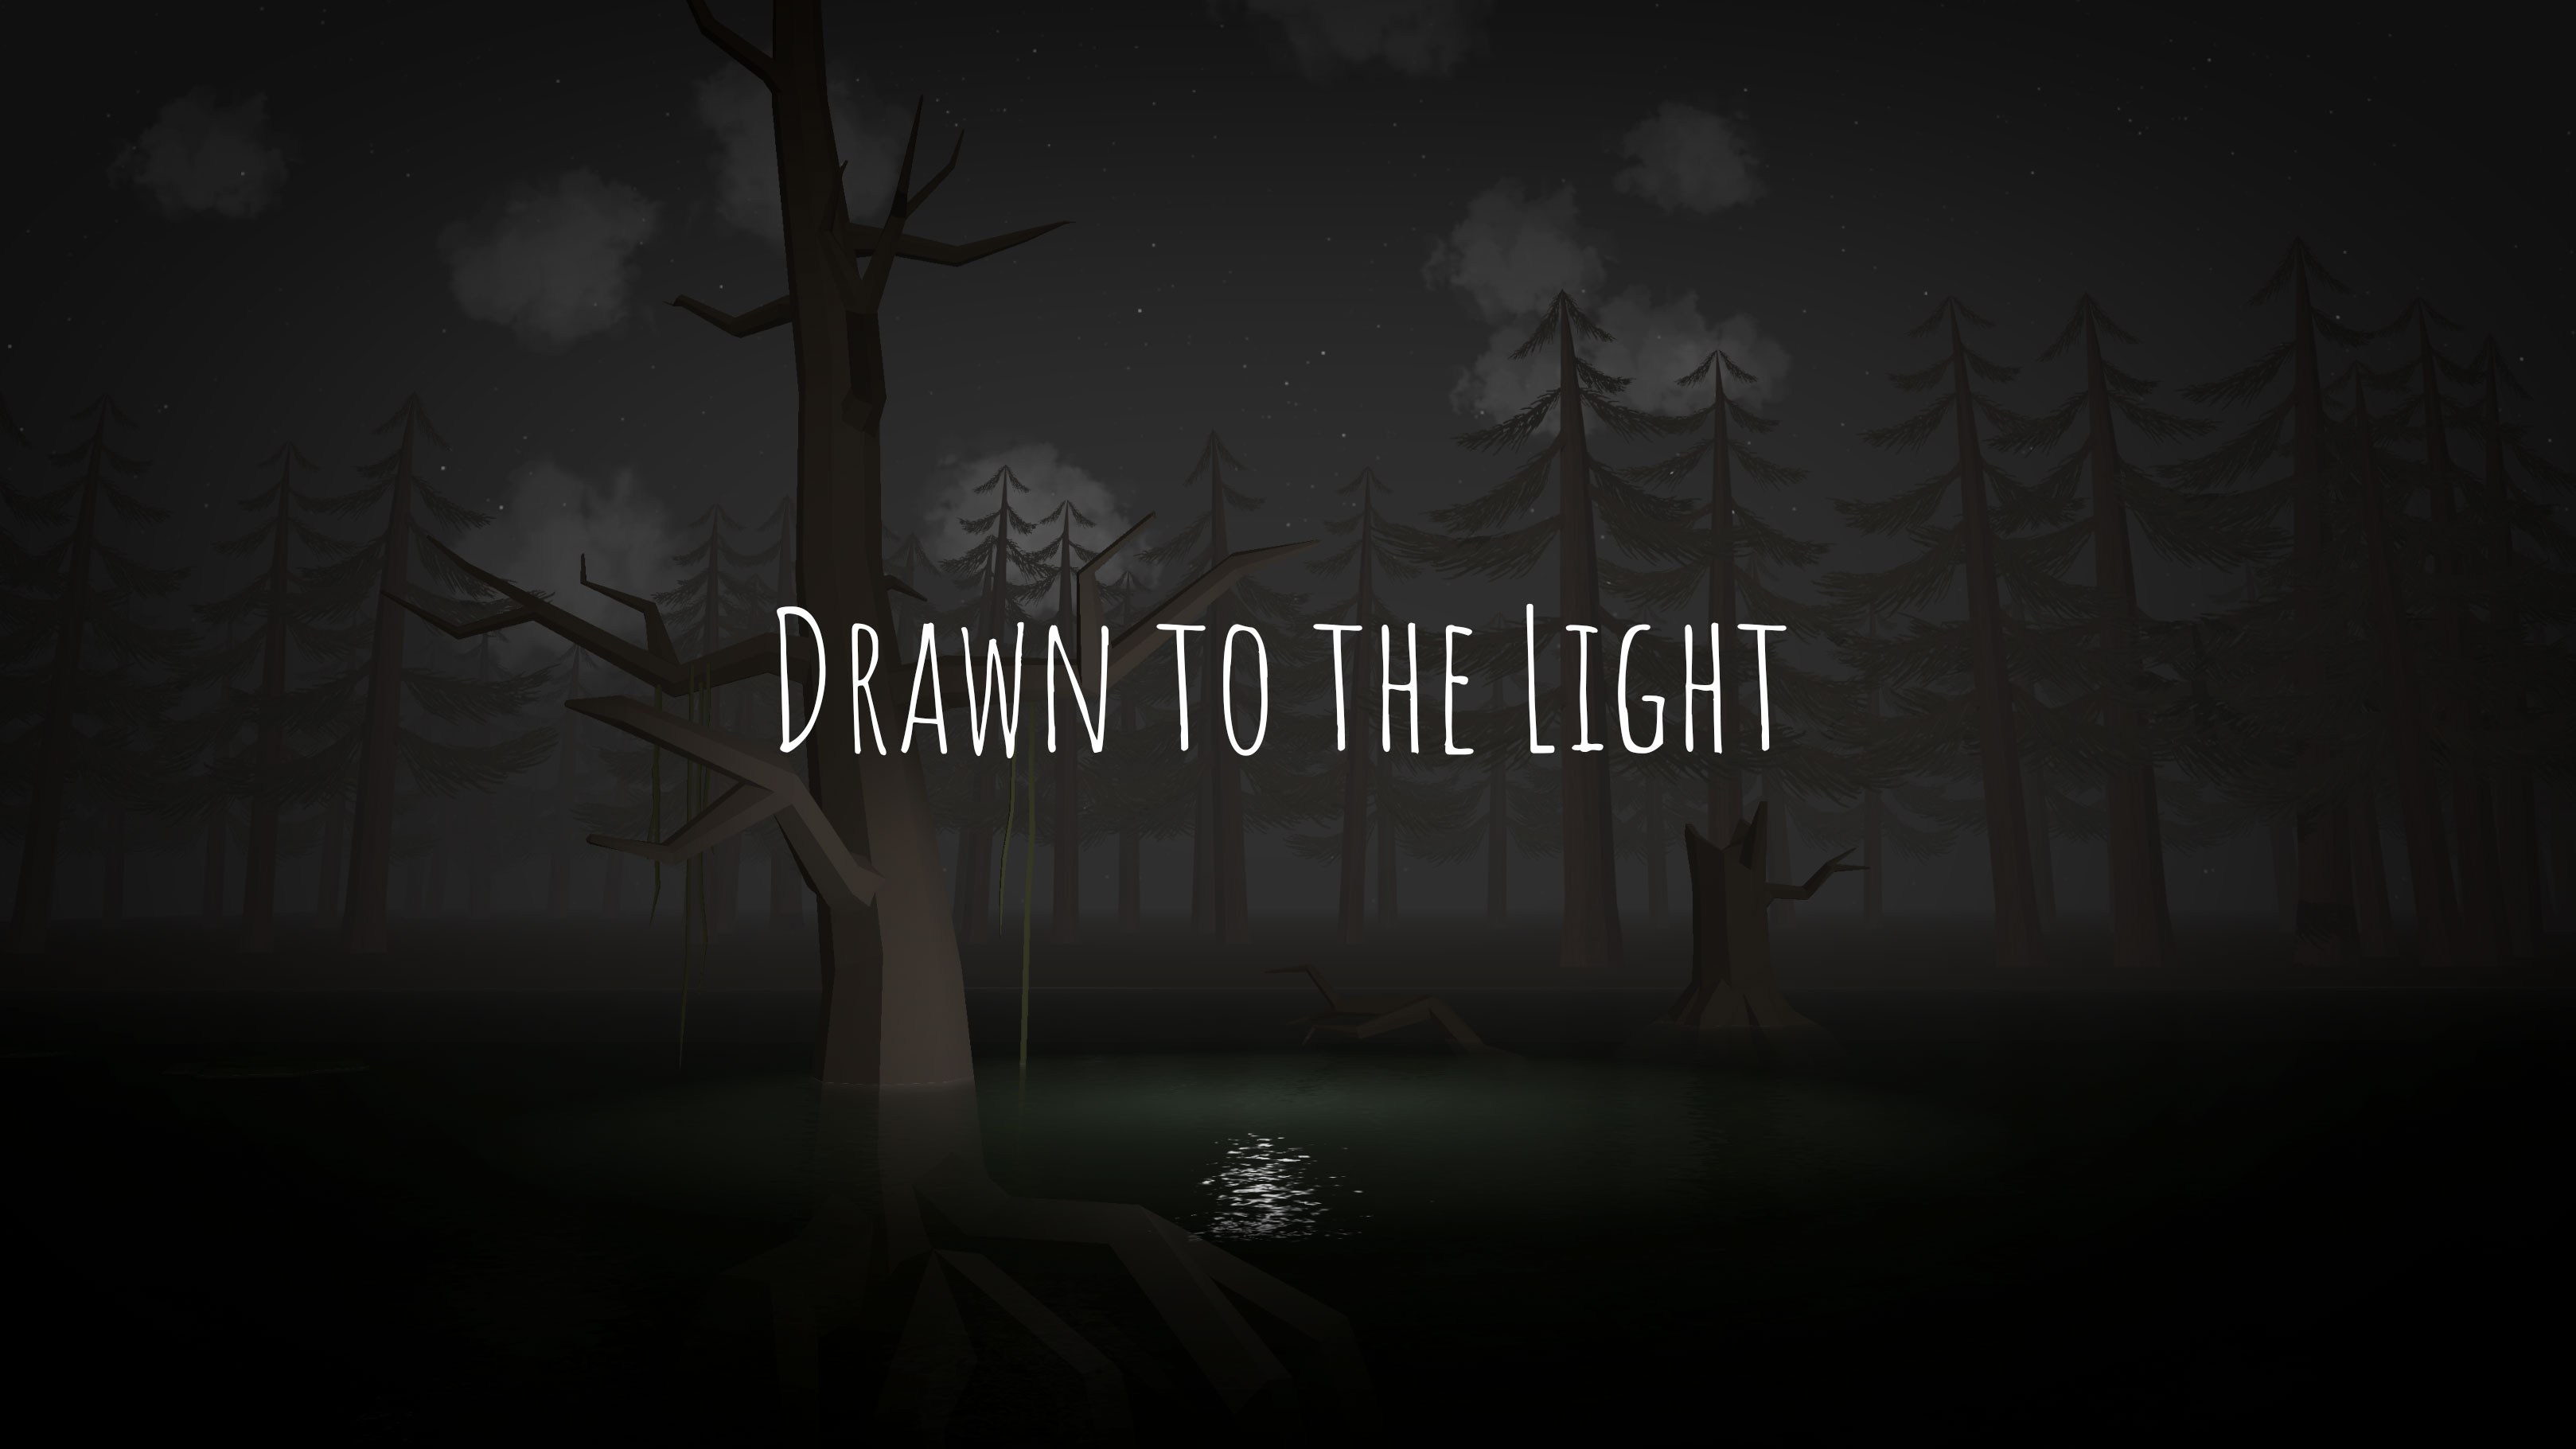 Drawn to the Light